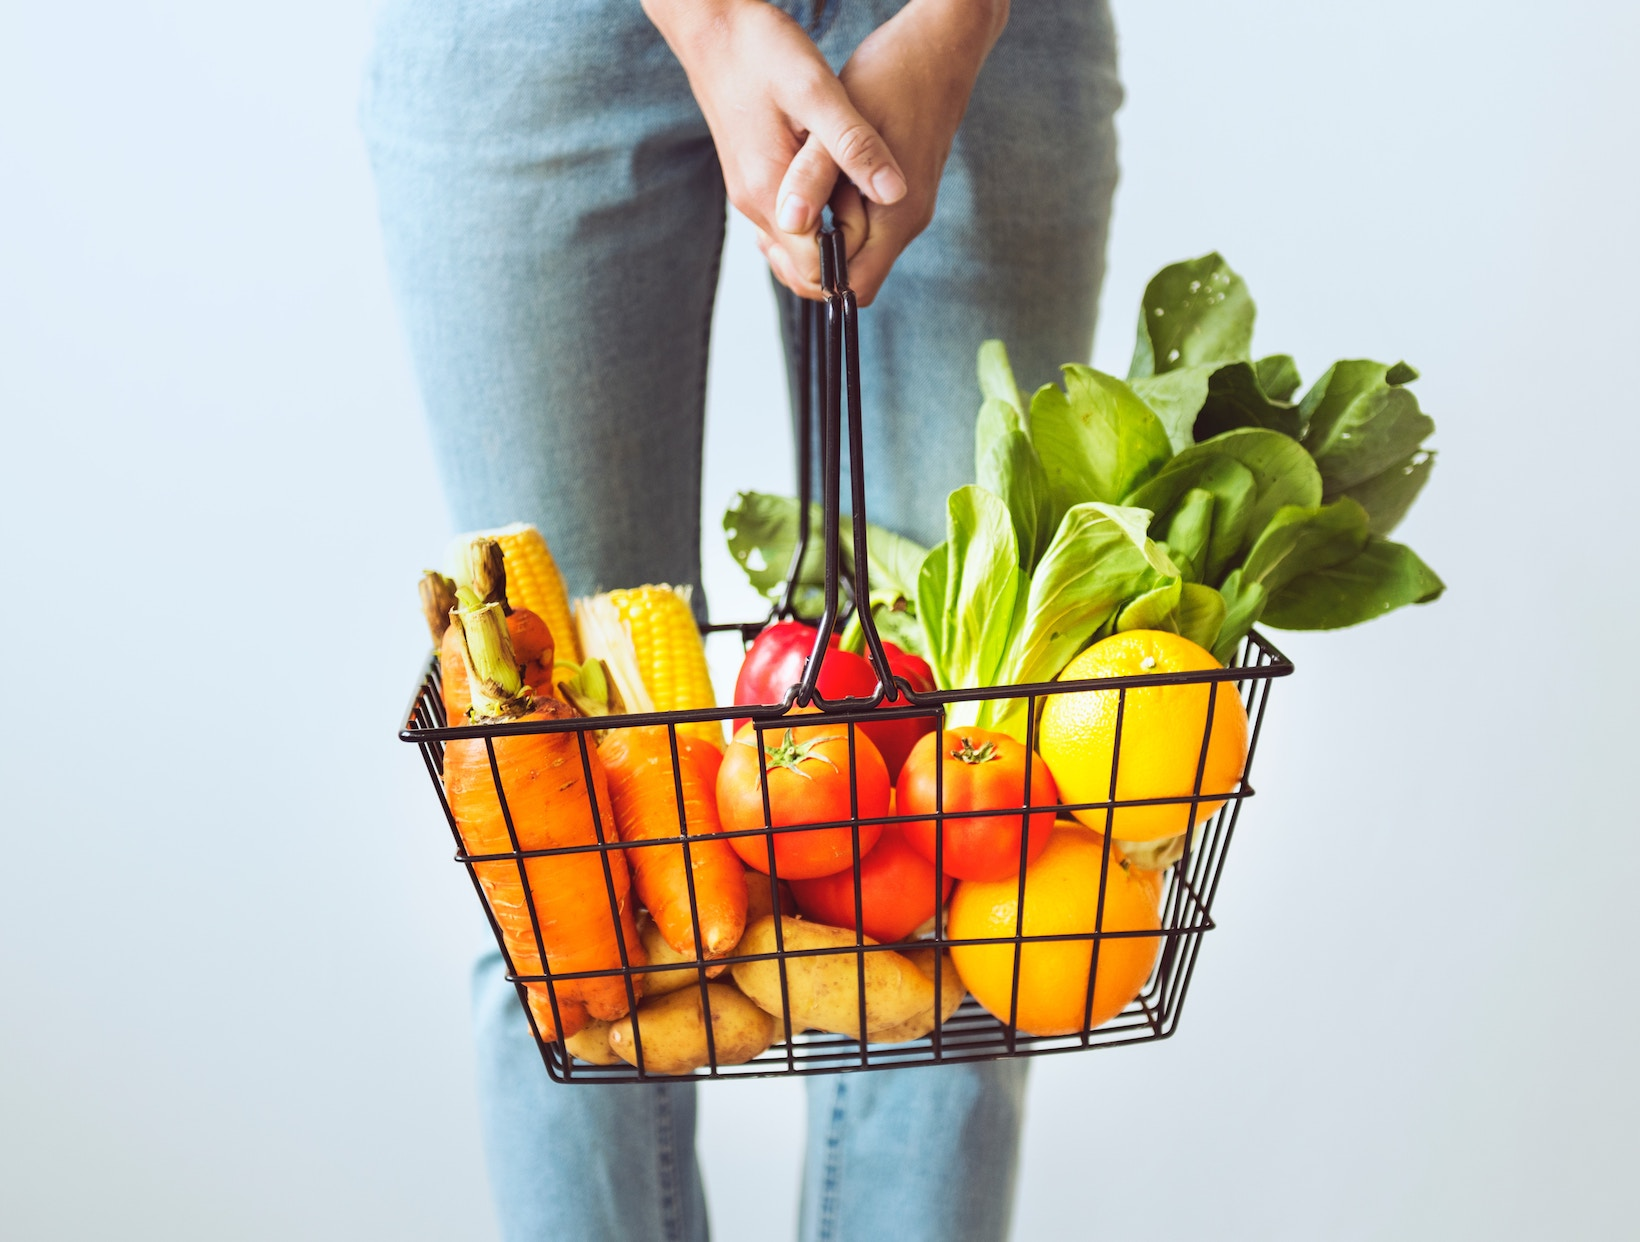 A Nutritionist on Why She Doesn't Always Buy Organic